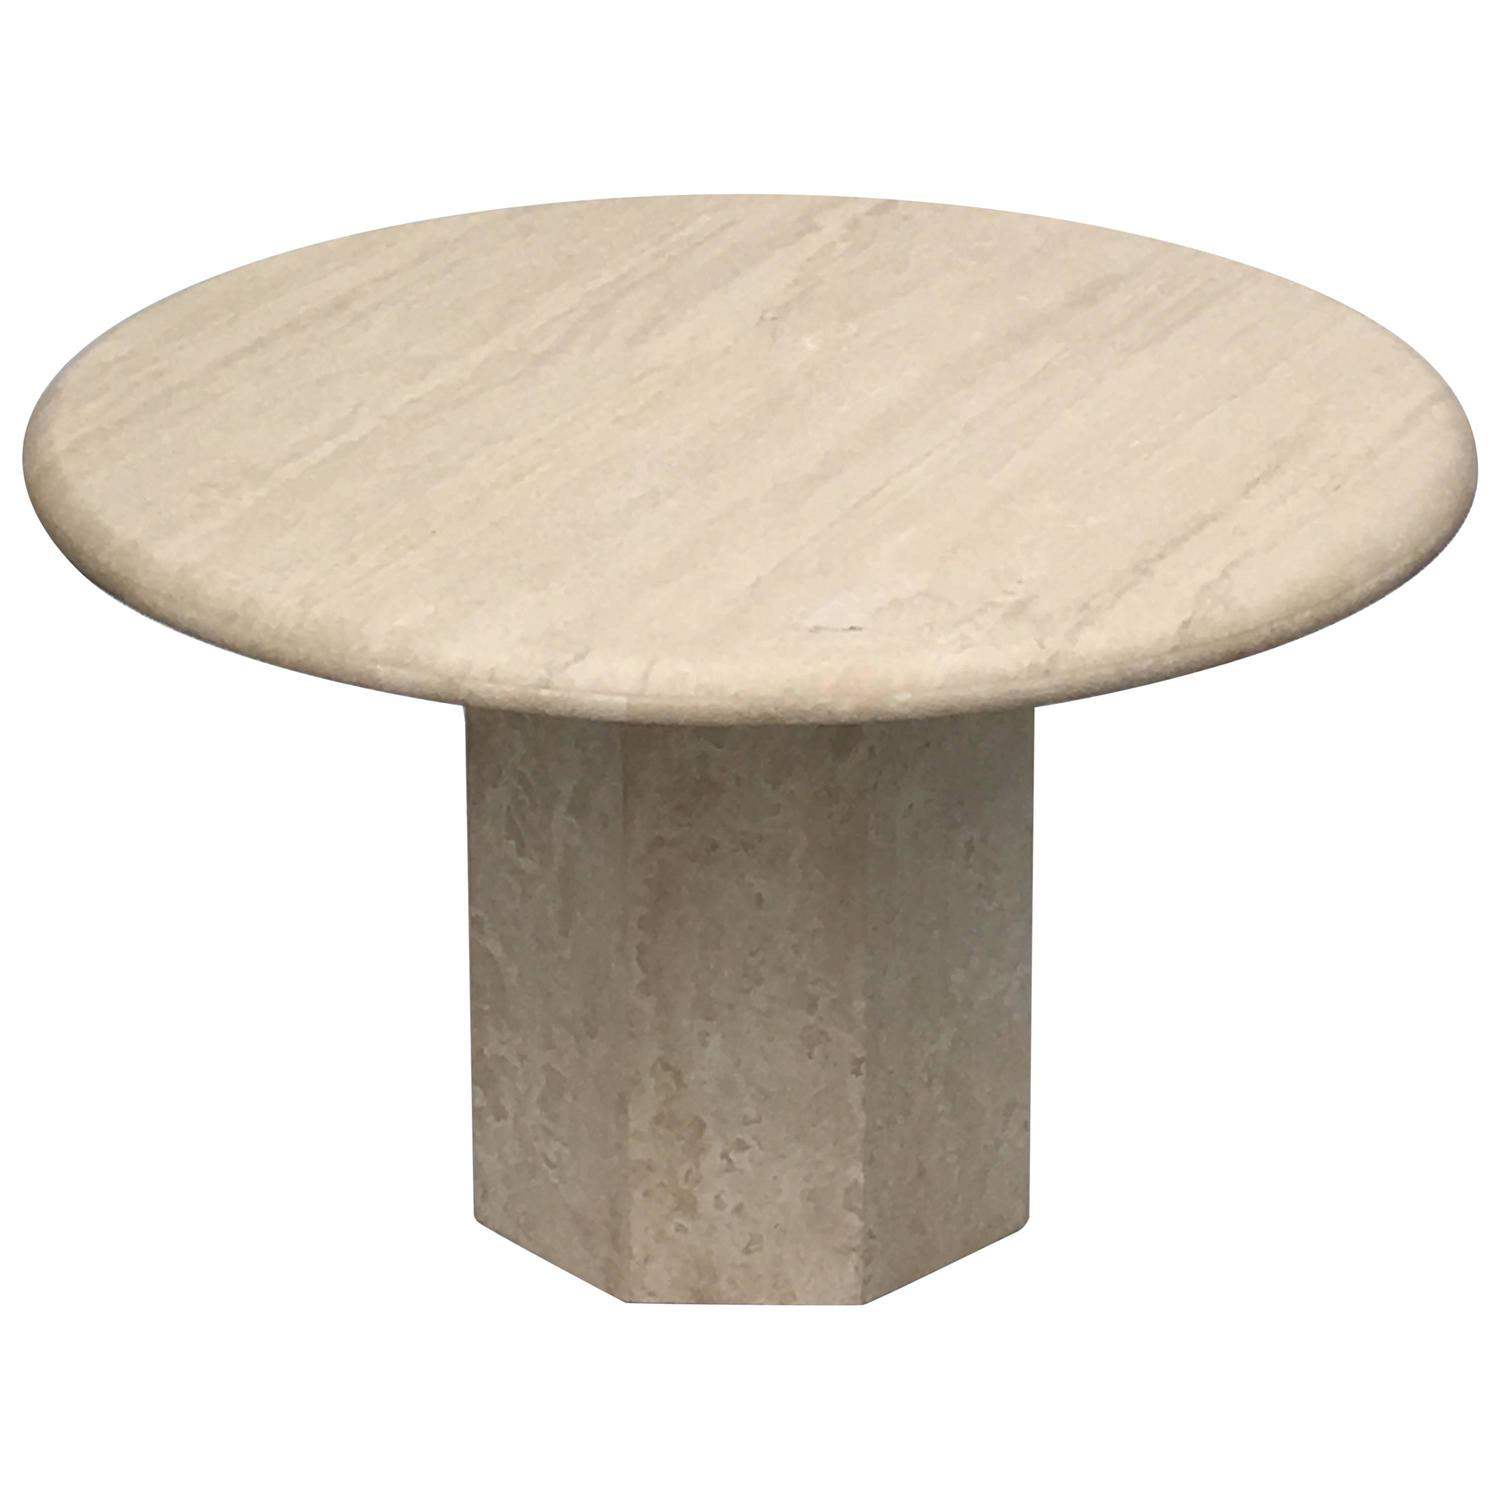 Round Italia Travertine Dining Table At 1stdibs